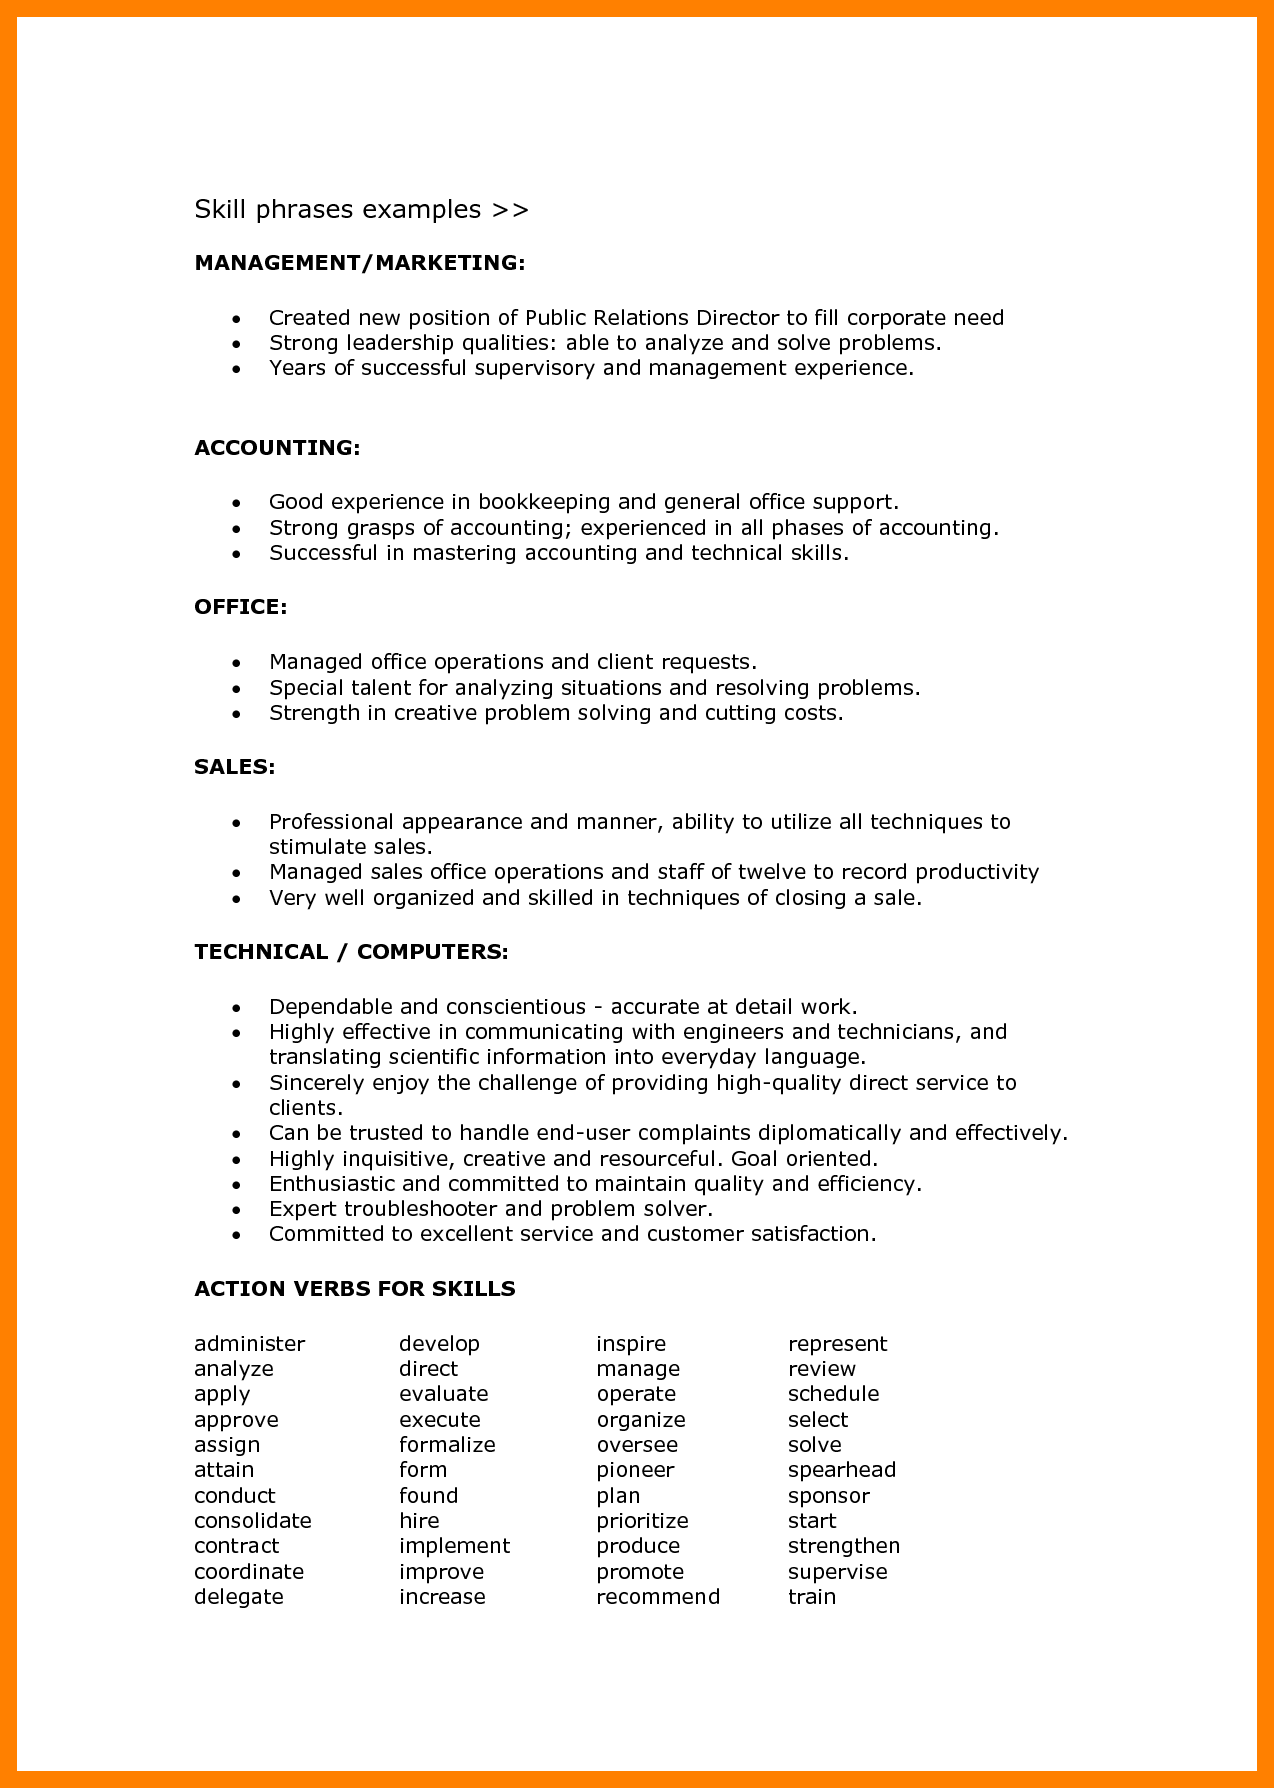 Sample Resume Language Skills Resume Format Skills Project Management Resume Examples